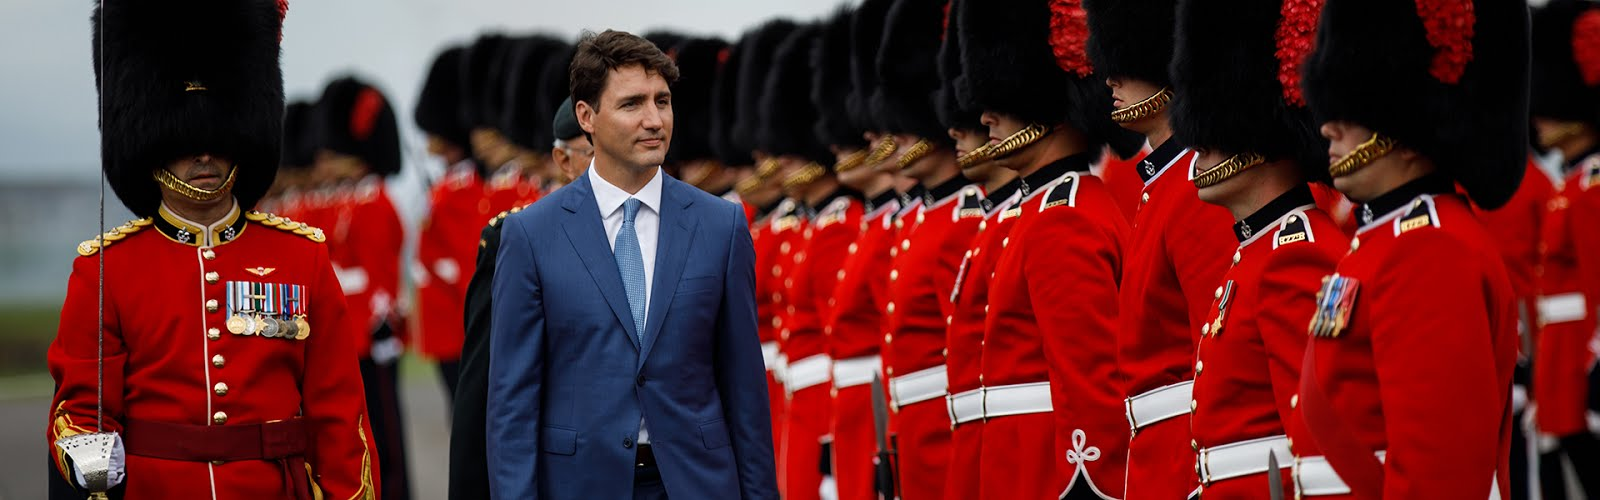 CANADA's Prime Minister, Justin Trudeau, wishes on Easter